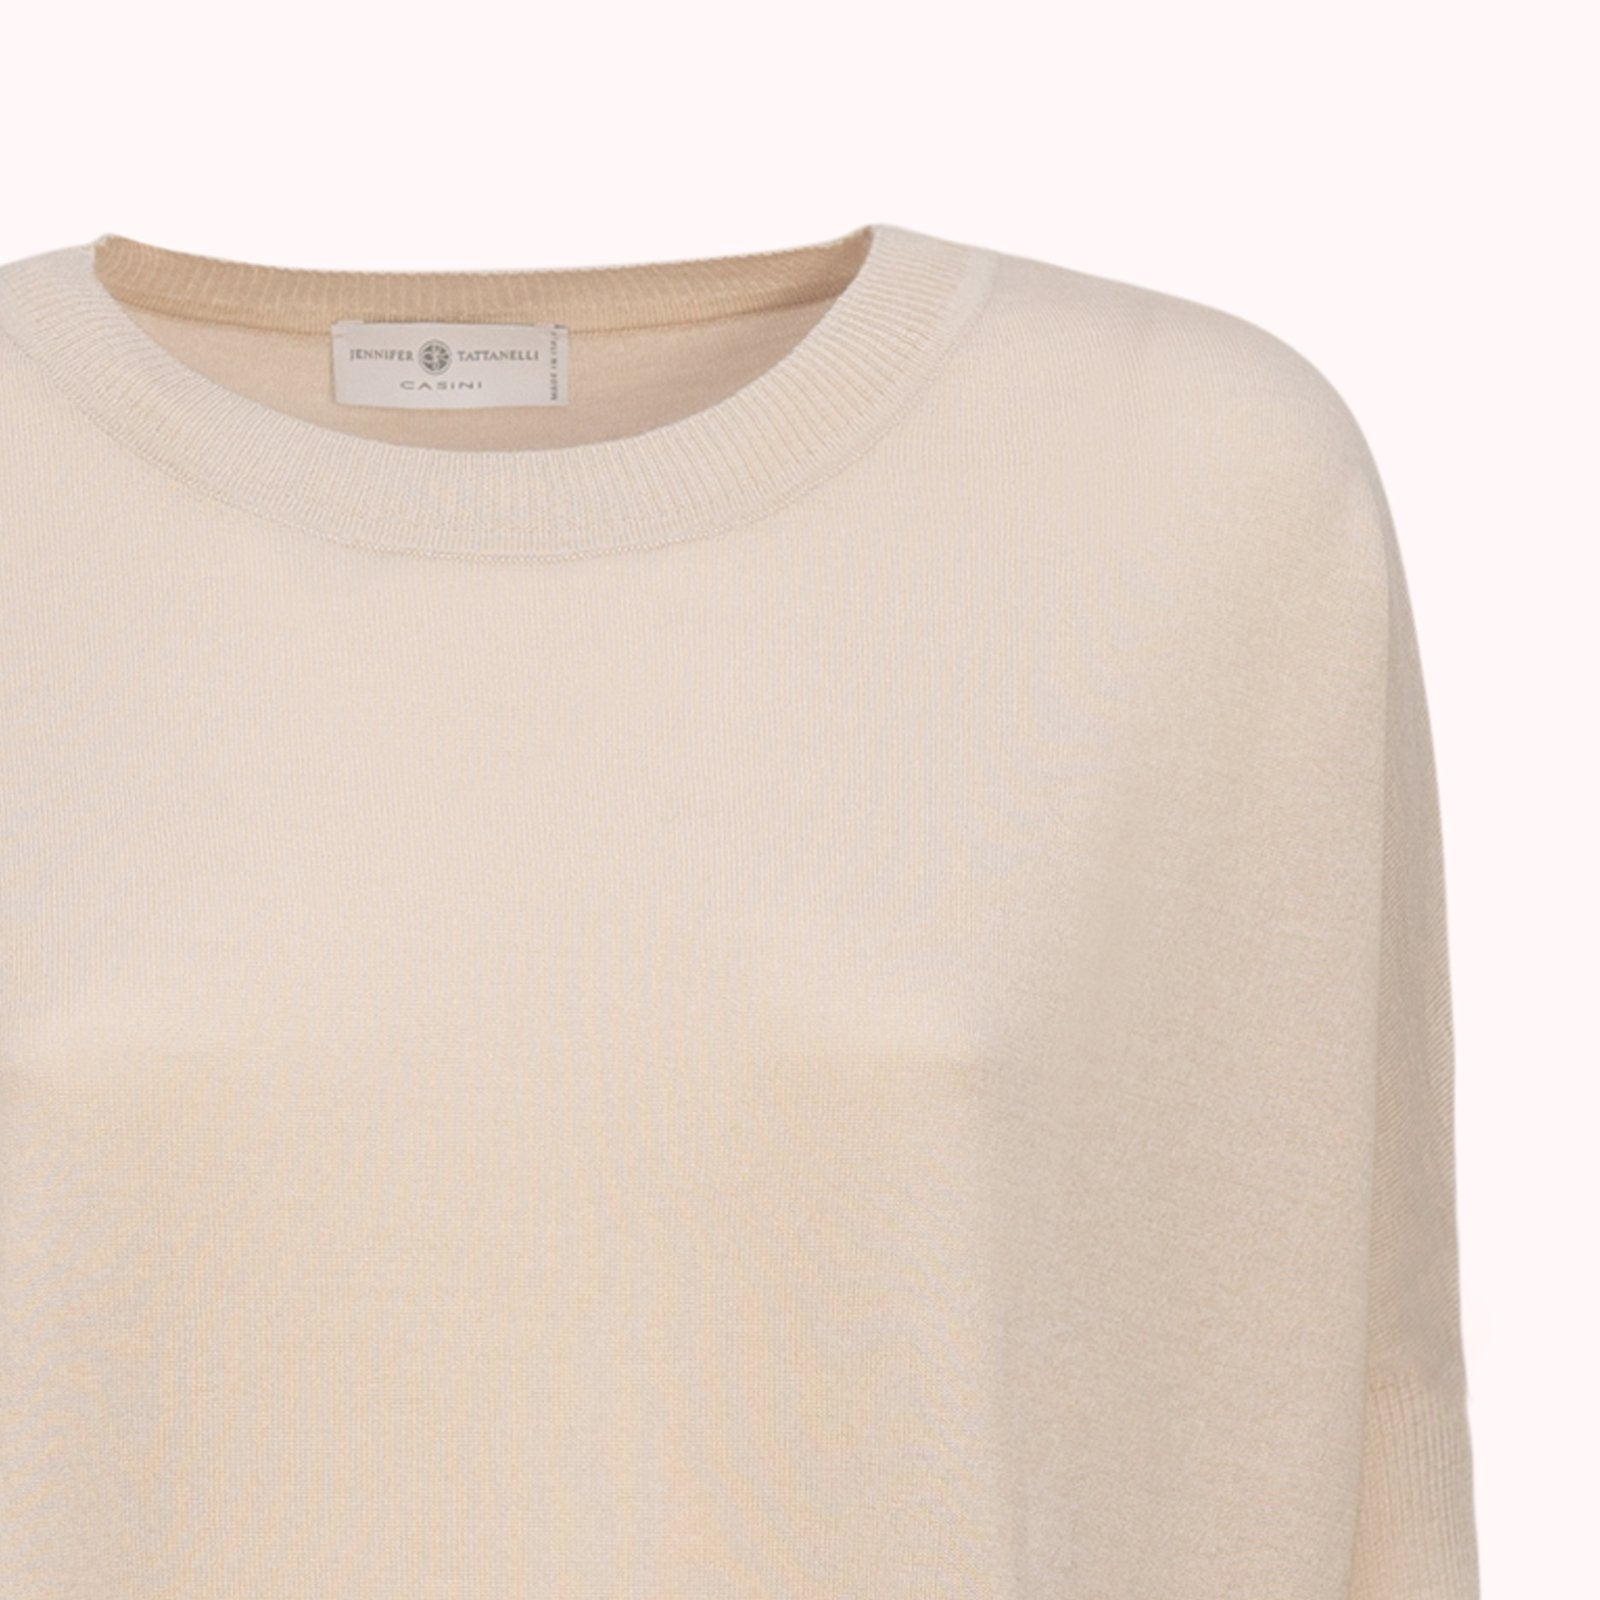 Women Loose Ribbed Sweater in Ice - Jennifer Tattanelli